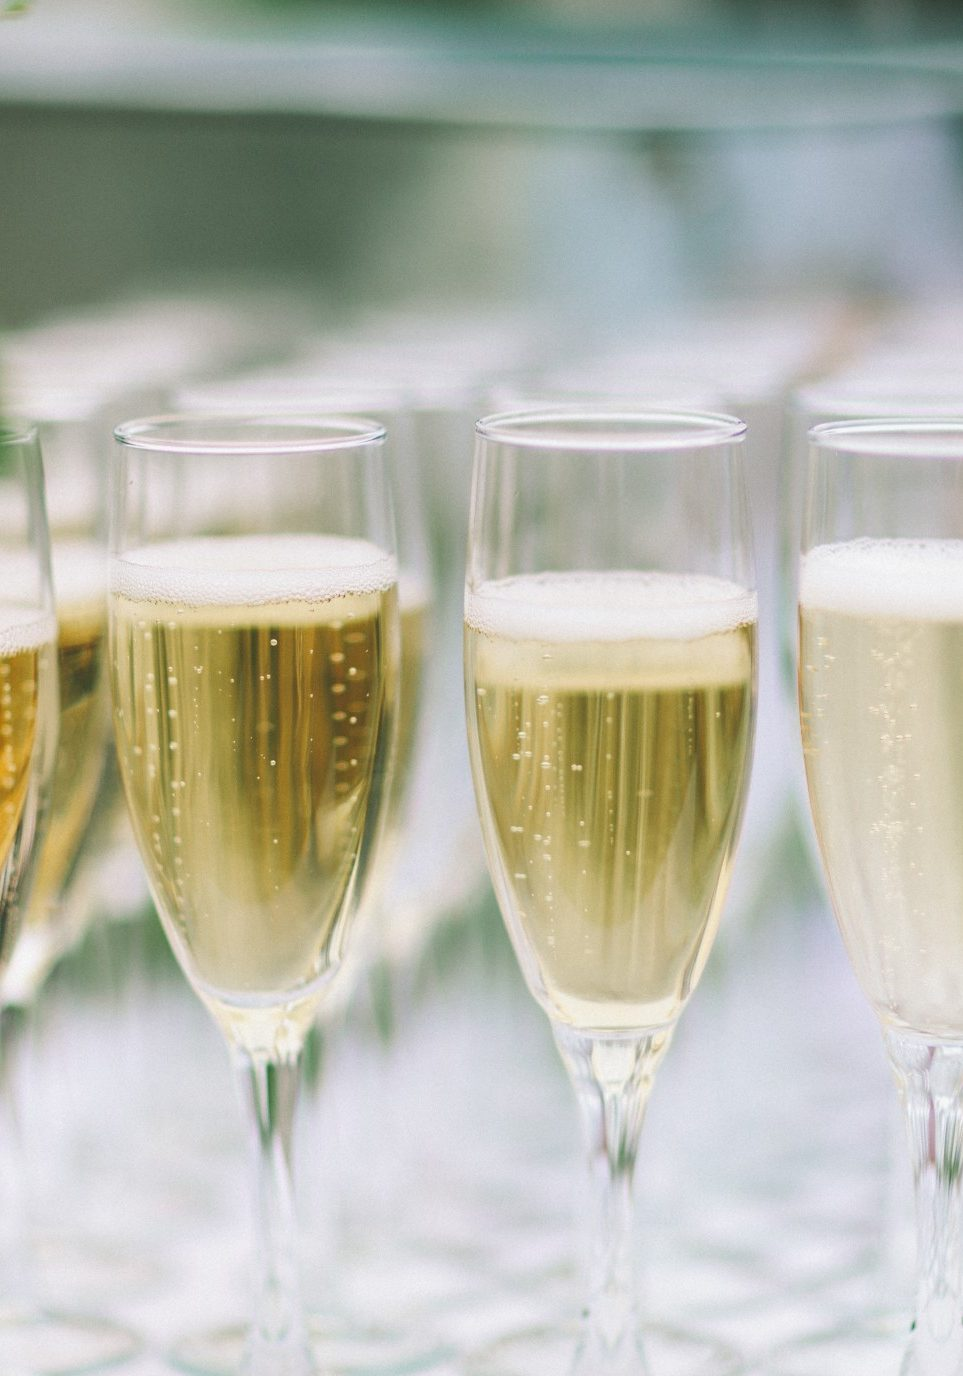 celebration-toast-champagne-drinks-glasses_t20_moPP4r